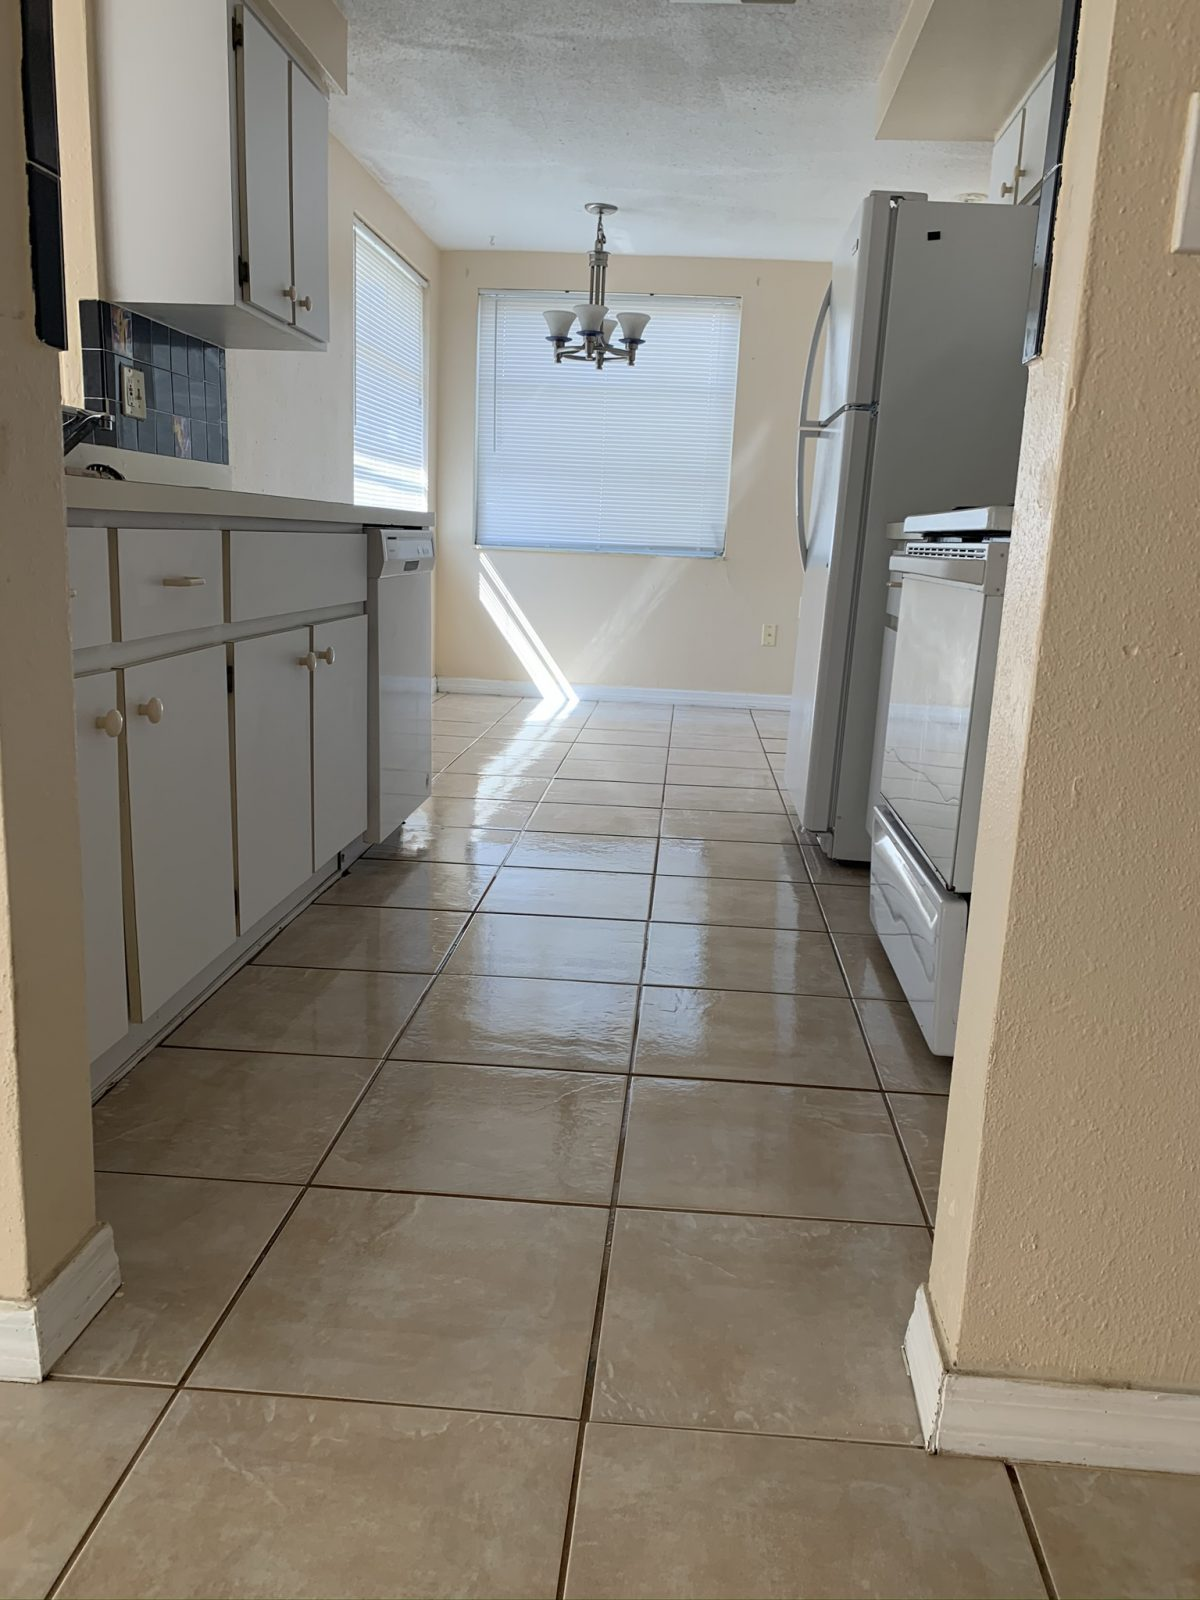 Professional Tile & Grout Cleaning Odessa Florida by Howards Cleaning Service